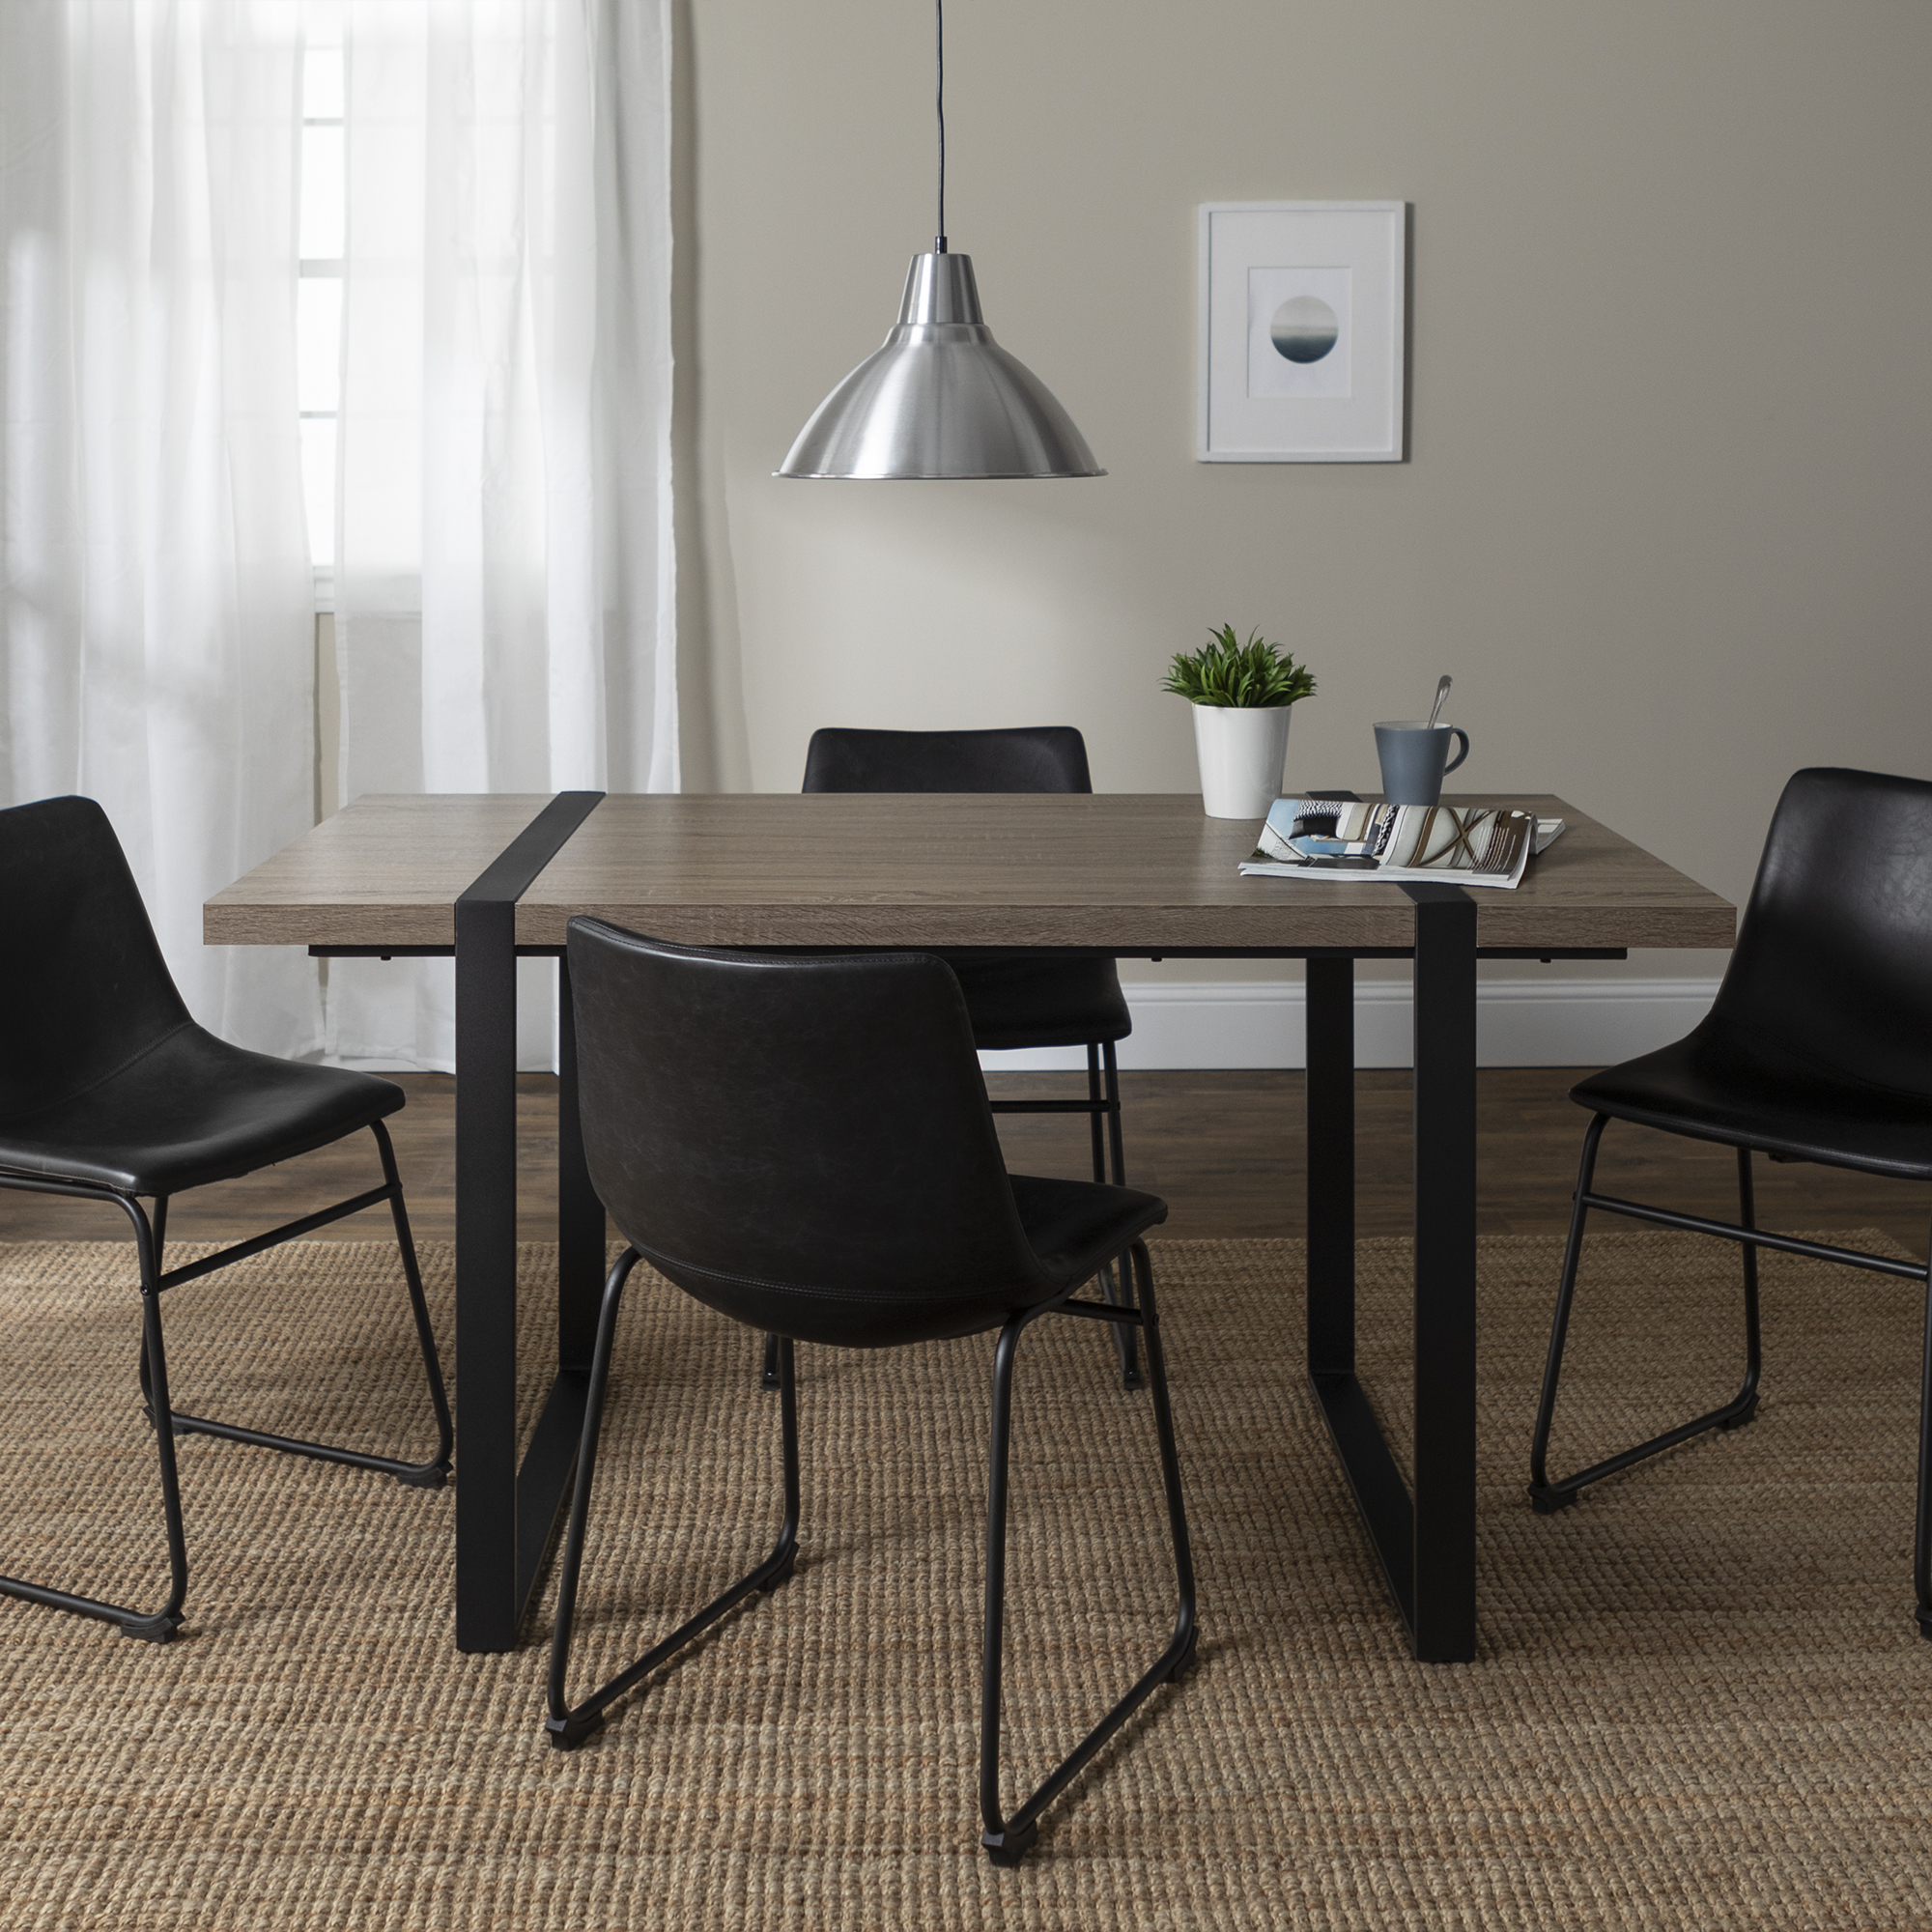 Manor Park Urban Blend 5 Piece Dining Set - Driftwood/Black